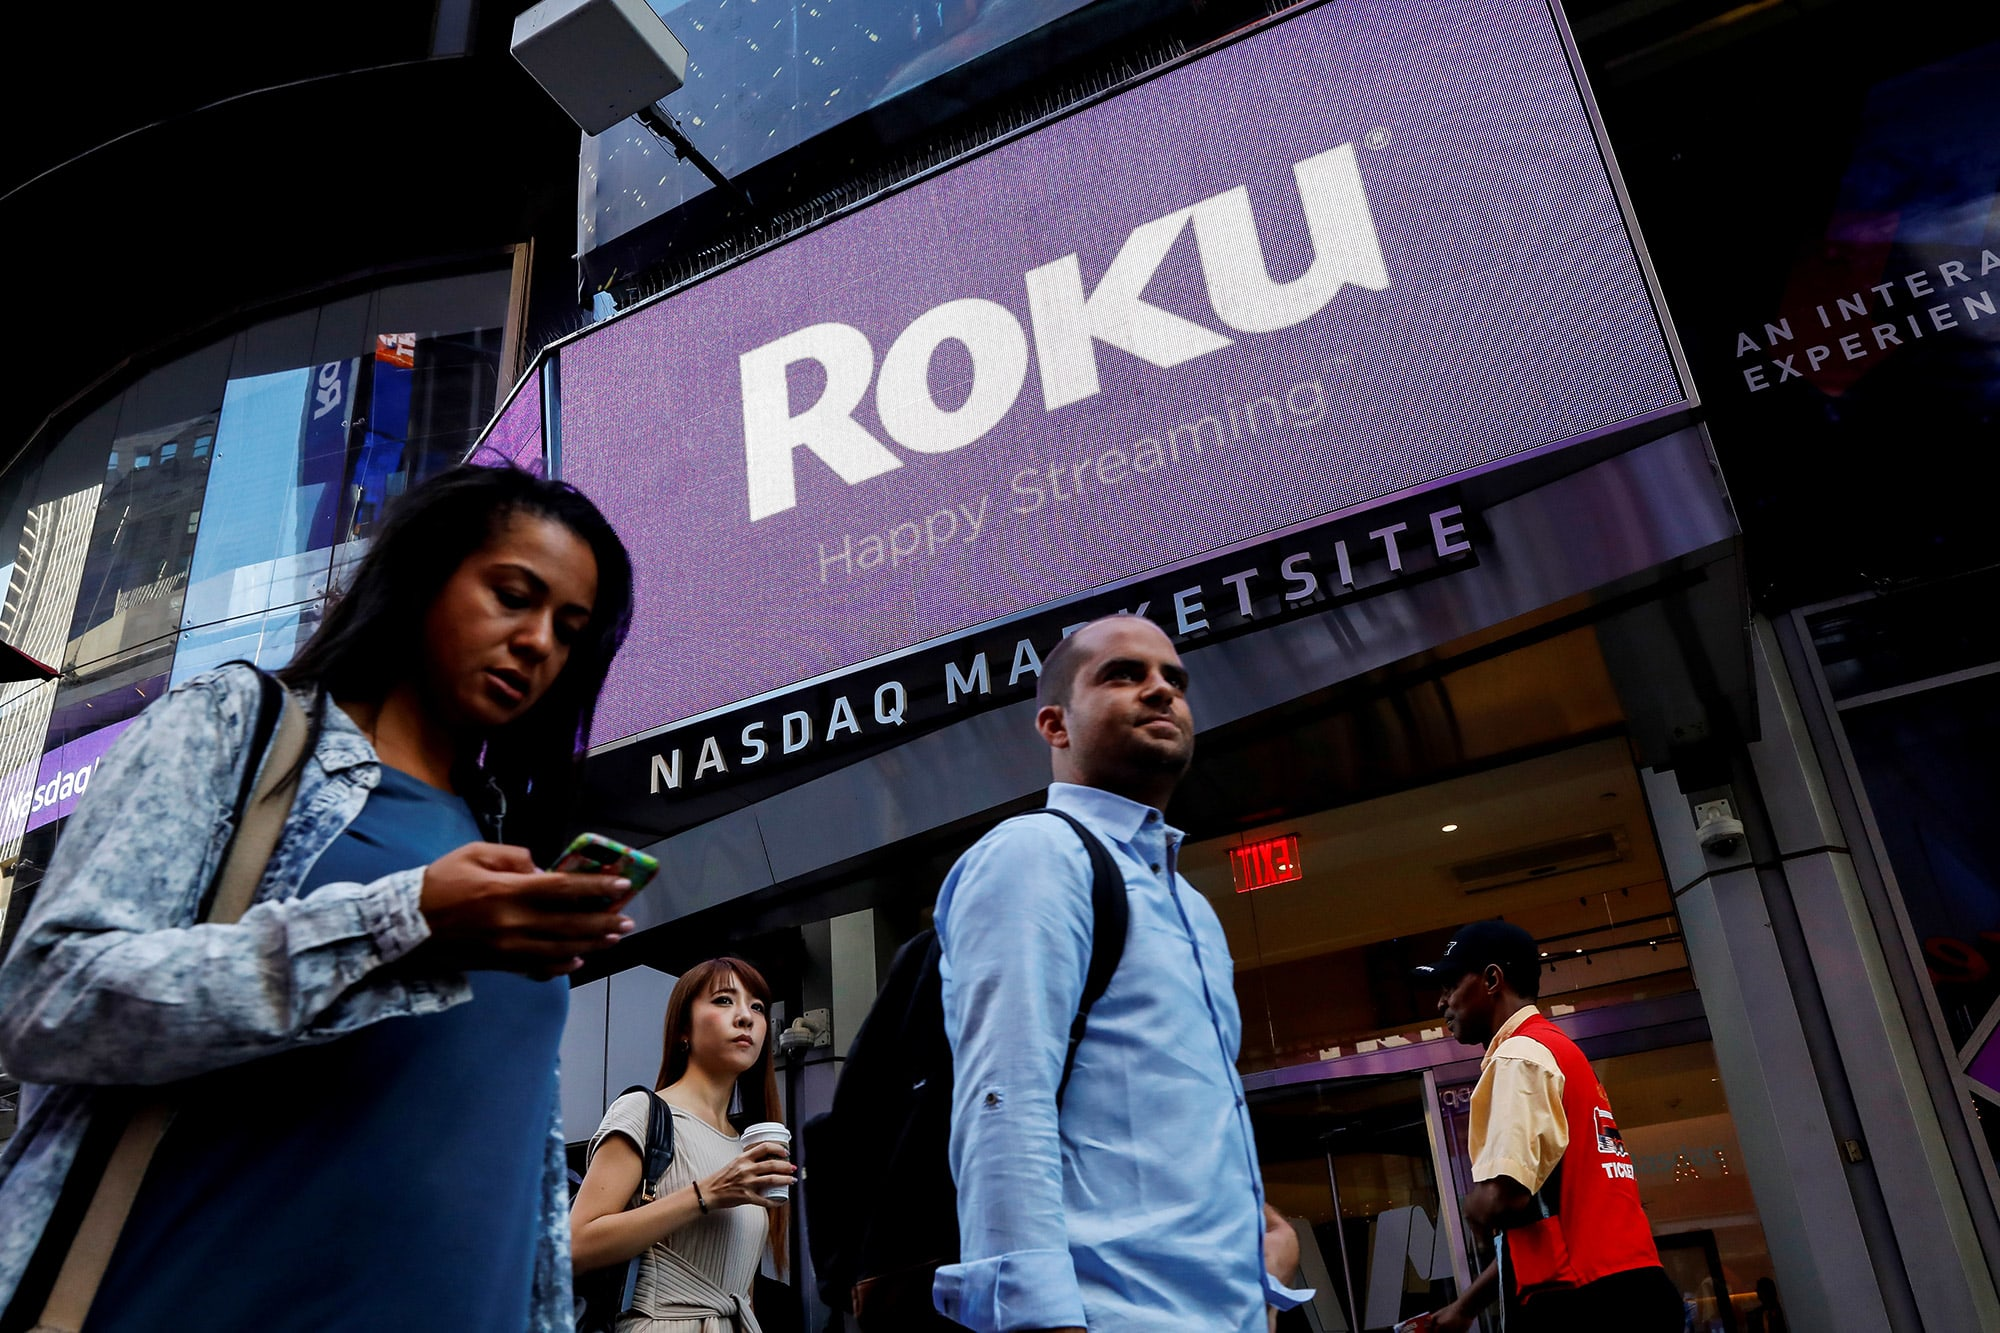 Roku is a better bet than Netflix from here, analyst says